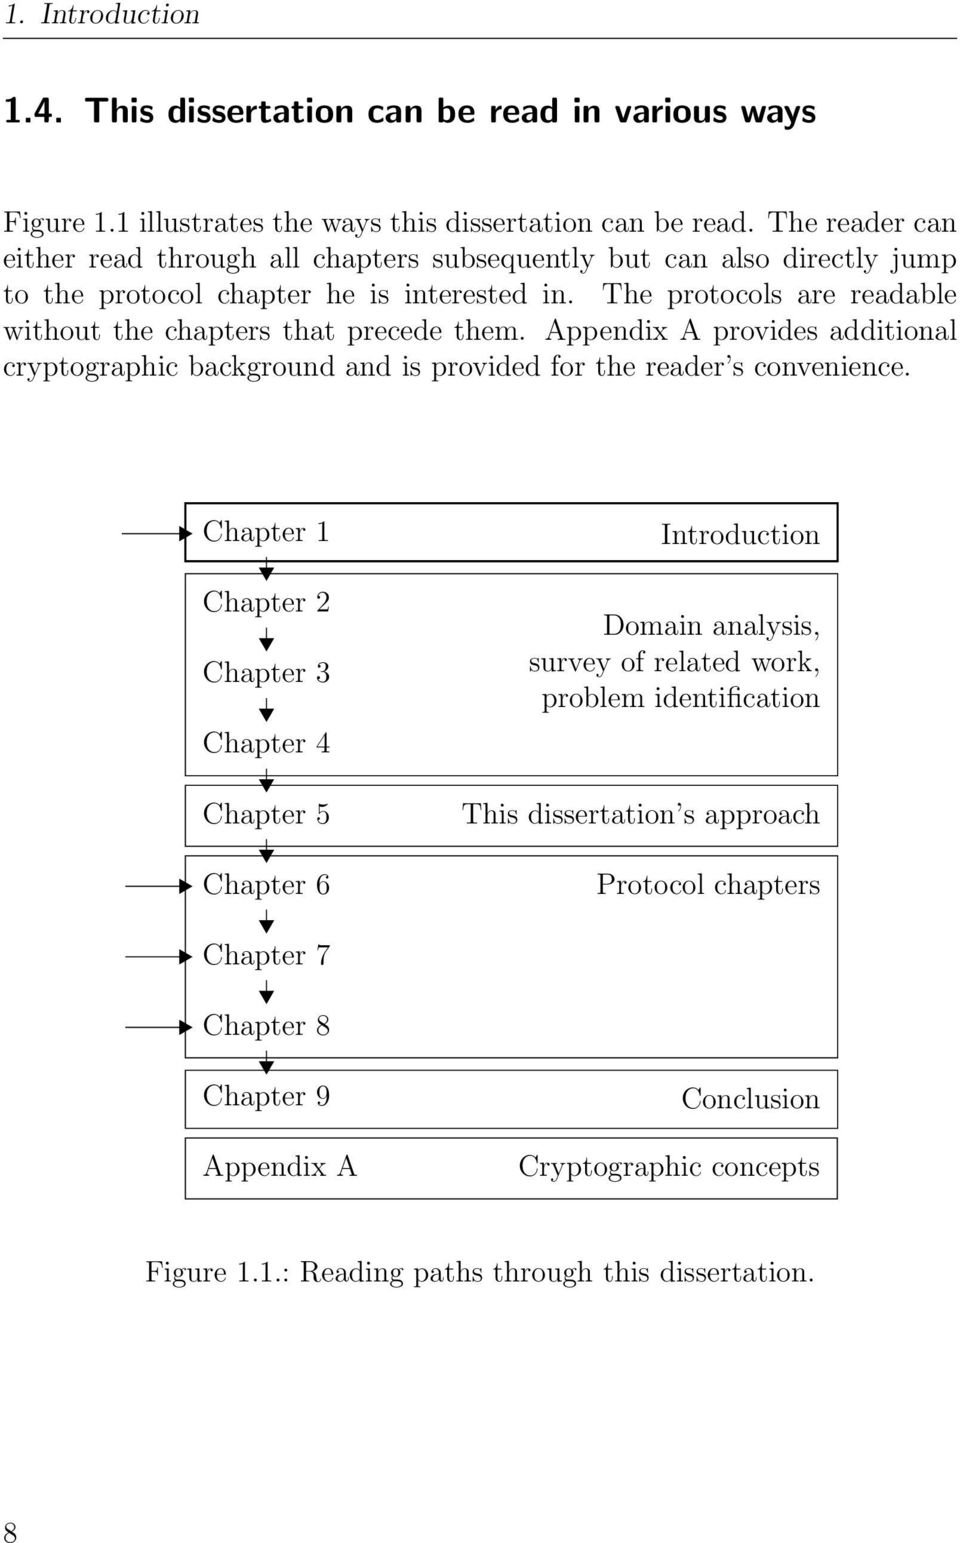 The protocols are readable without the chapters that precede them. Appendix A provides additional cryptographic background and is provided for the reader s convenience.